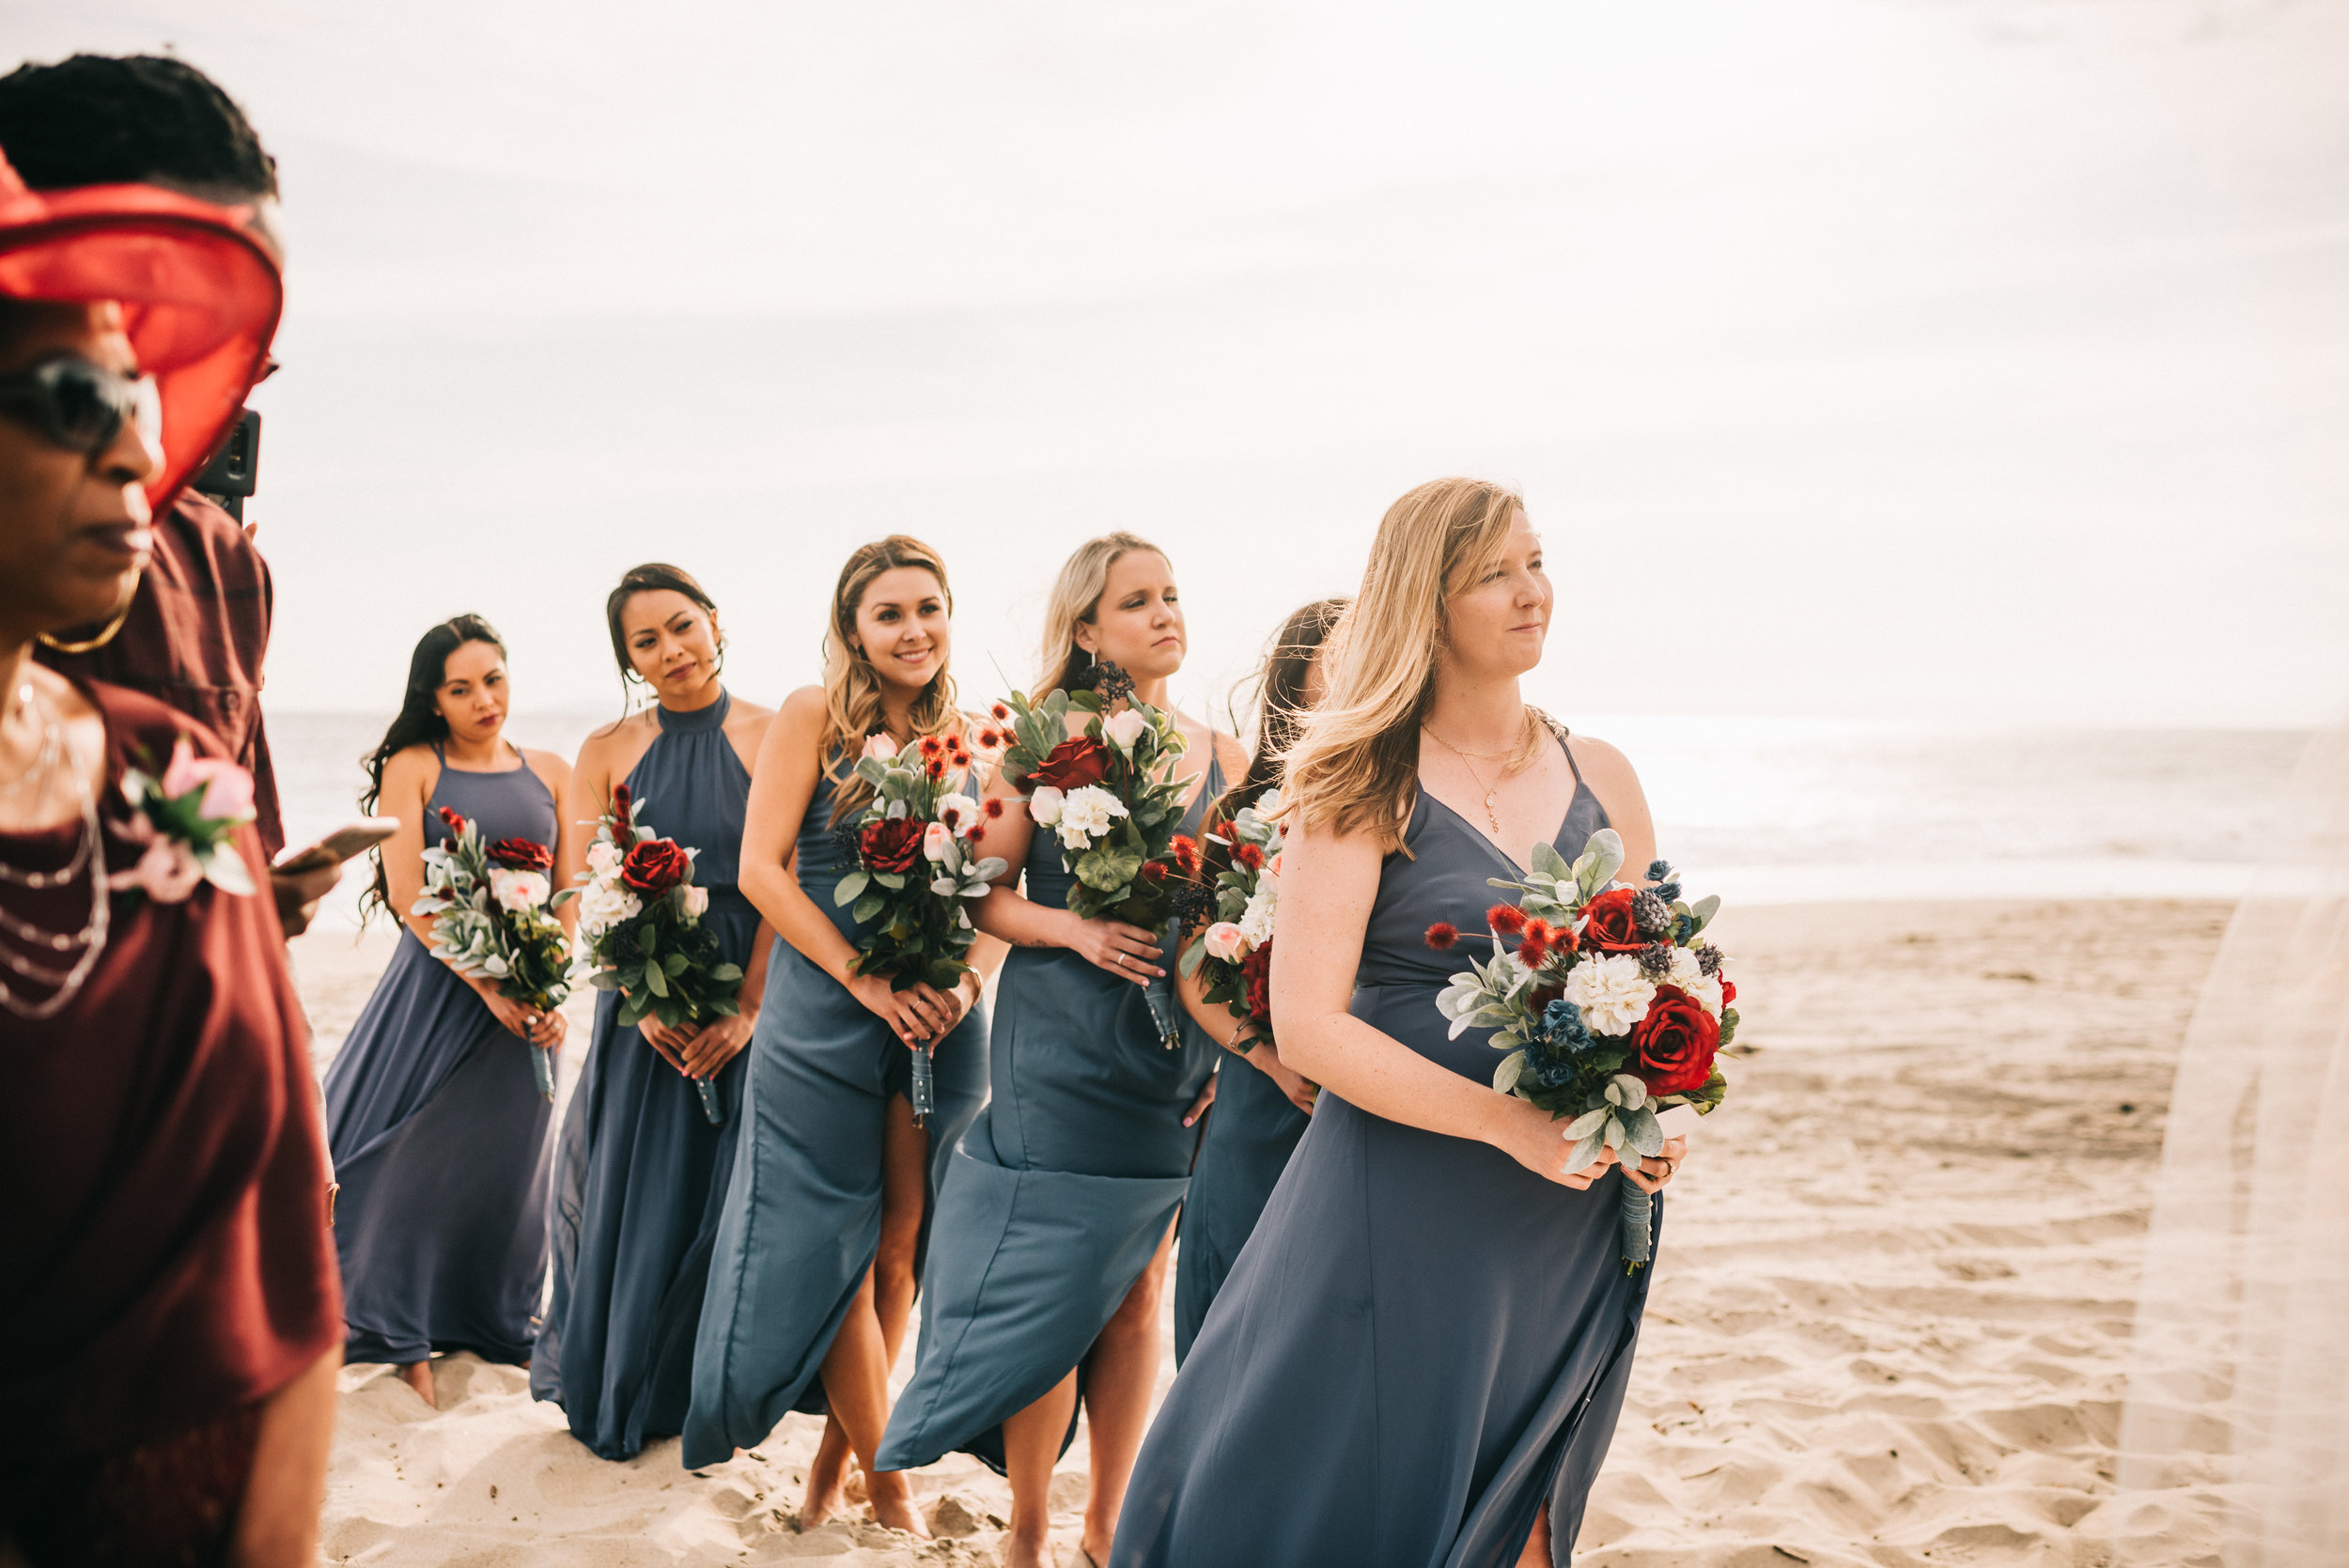 southern california laguna beach salt creek beach los angeles socal boho bay area akland san francisco engagement wedding nontraditional fun creative eclectic photographer magic-518.jpg